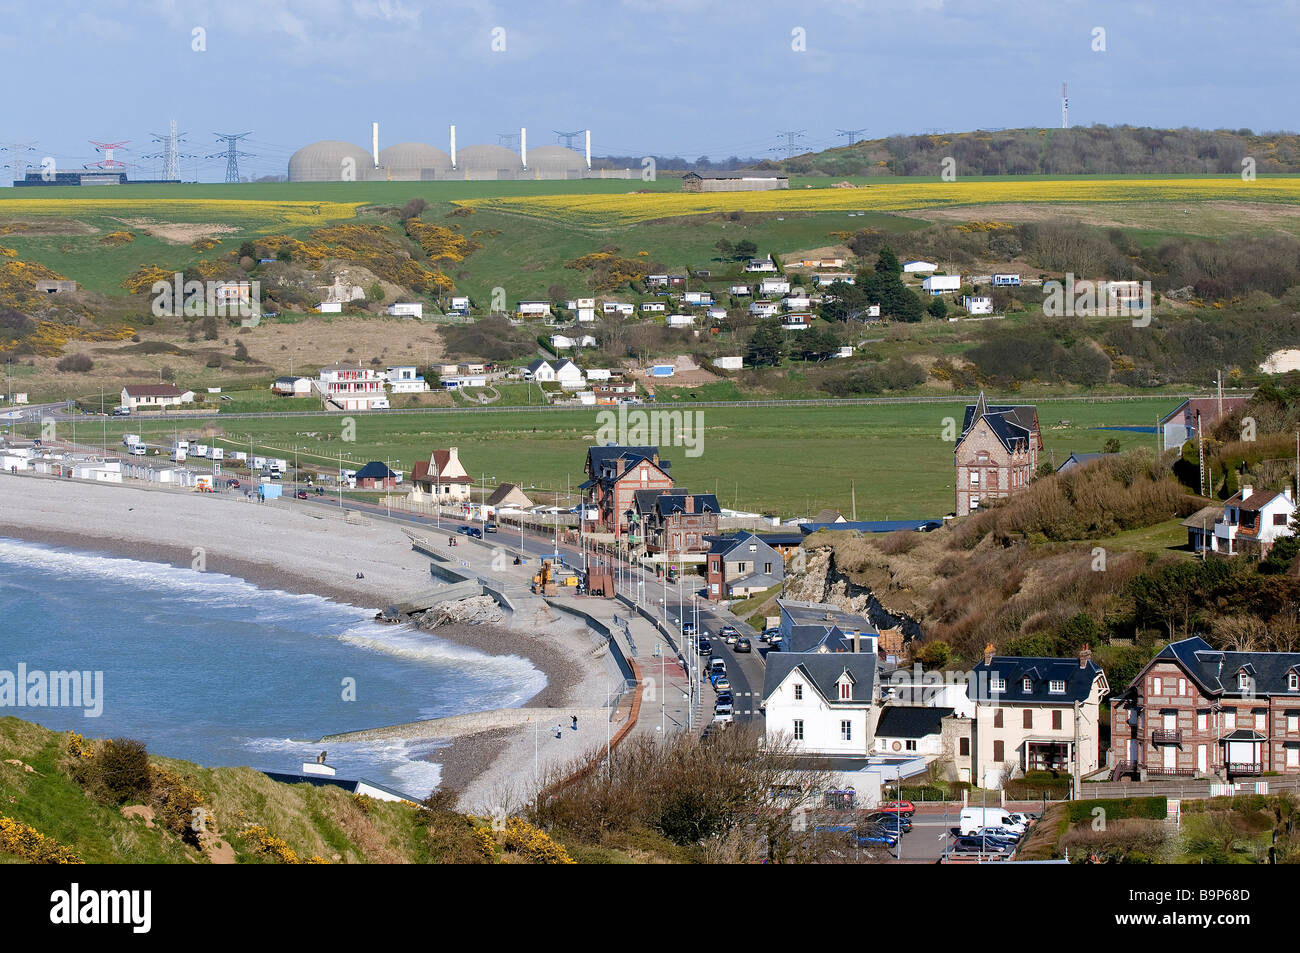 France, Seine Maritime, Veulettes sur Mer and the nuclear plant of Paluel - Stock Image